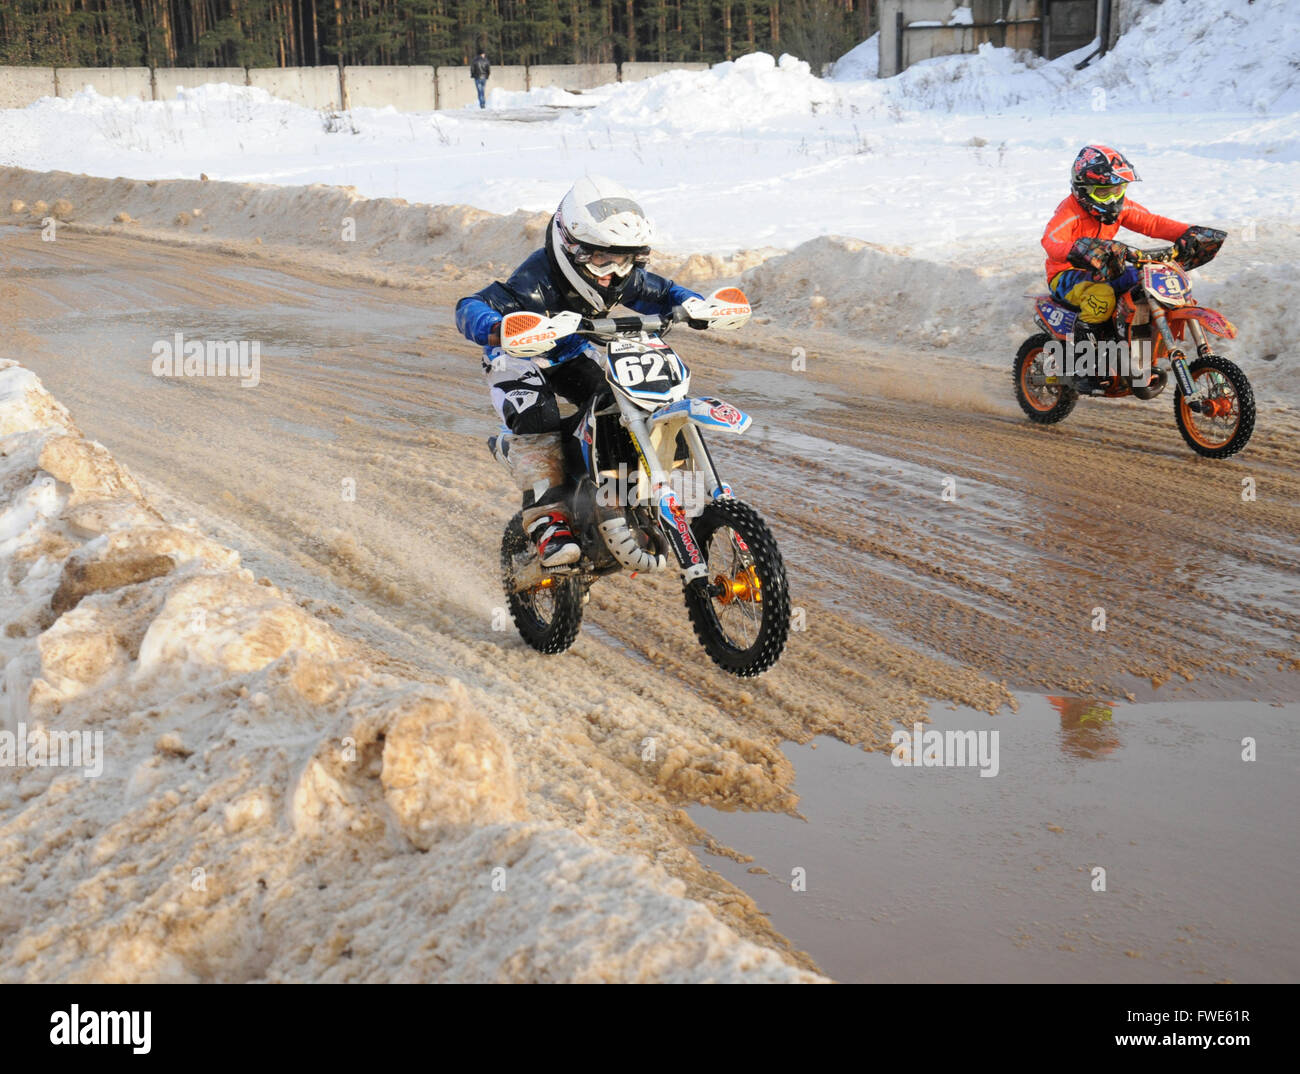 Kovrov, Russia. 22 February 2015. Winter motocross competitions - Stock Image